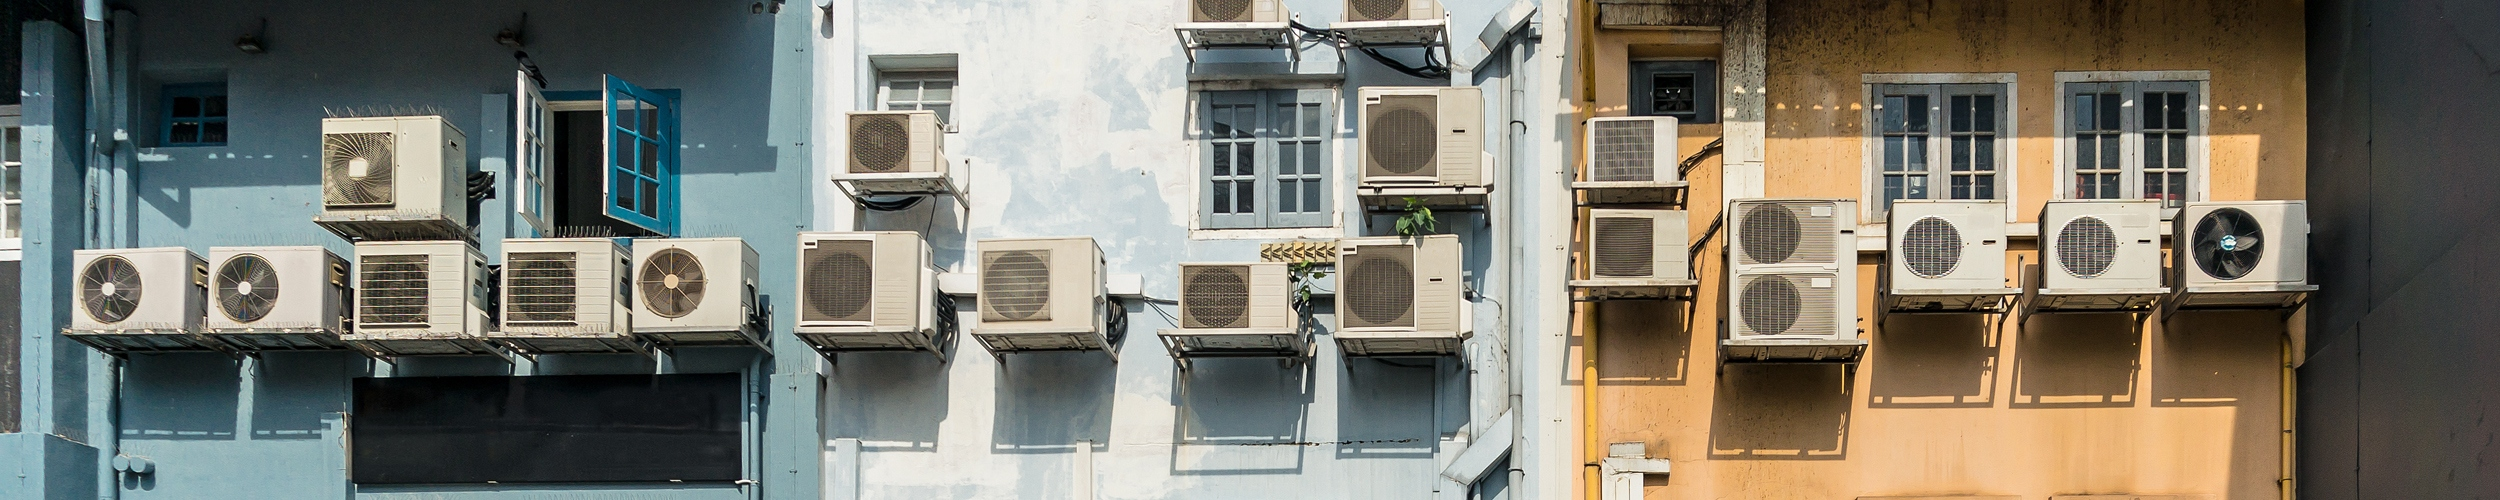 It is projected that at least 19 new cooling appliances will be sold every second for the next 30 years